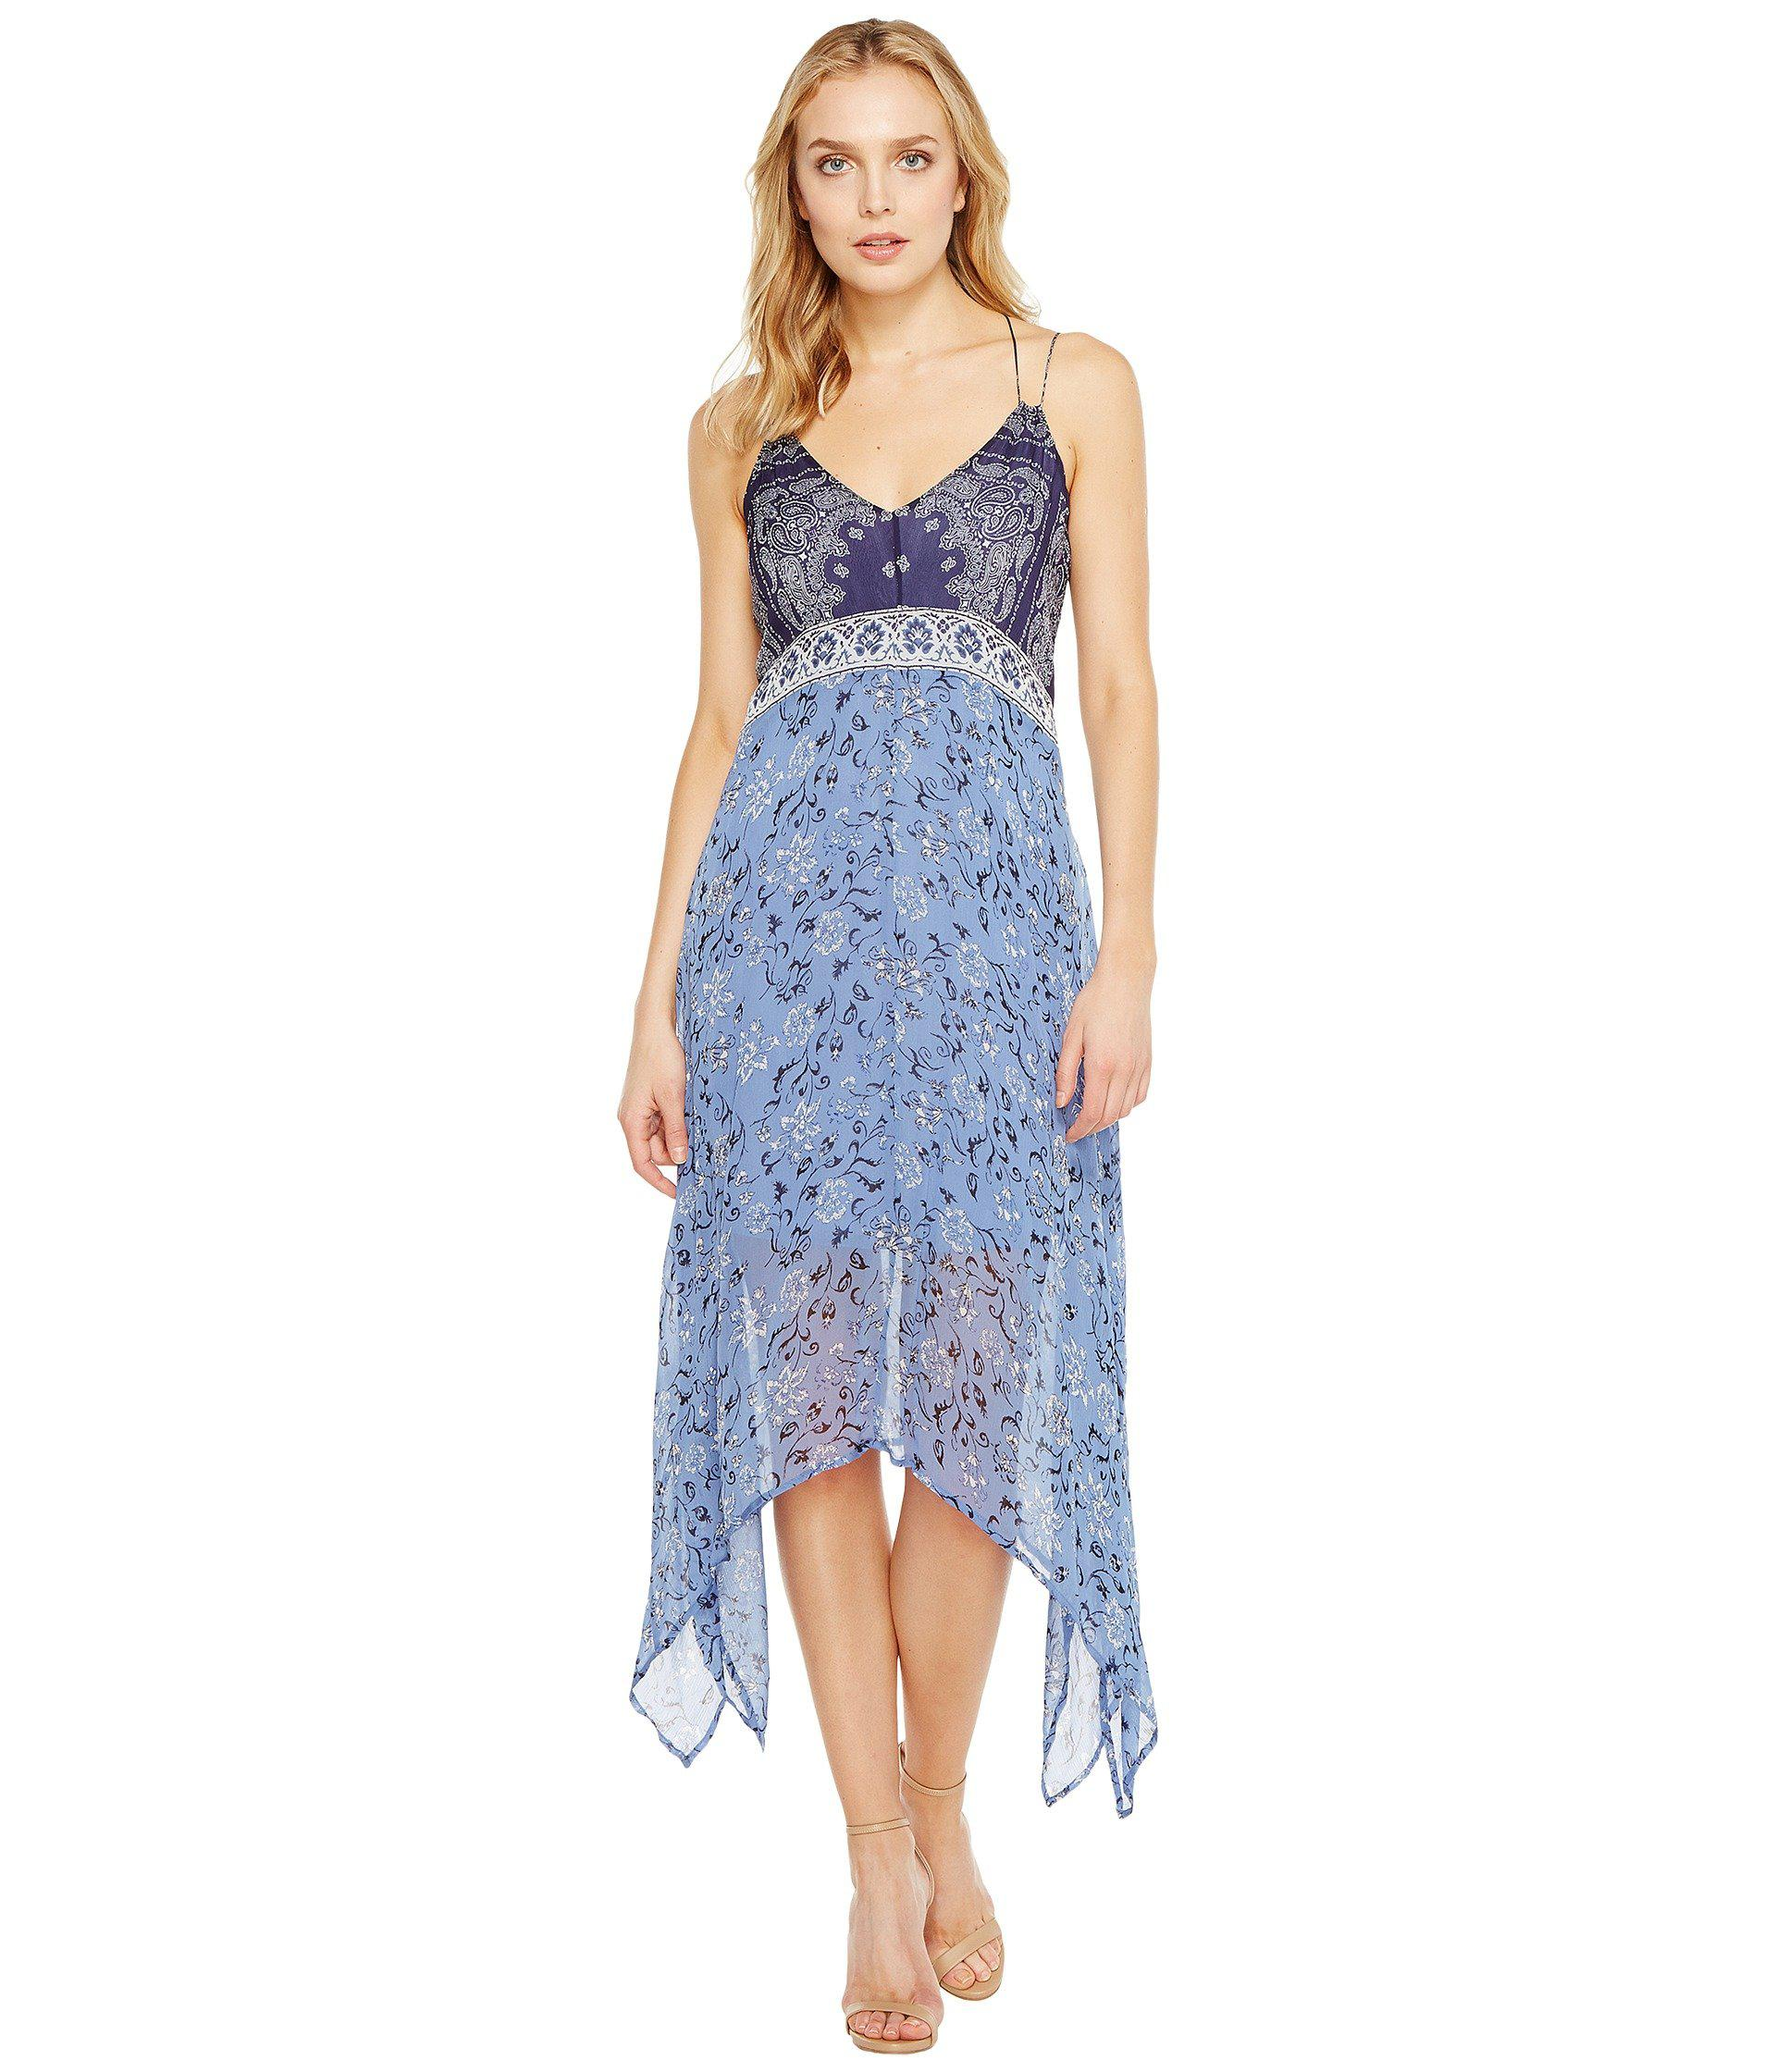 40422f2d6af Lyst - Lucky Brand Scarf Print Dress in Blue